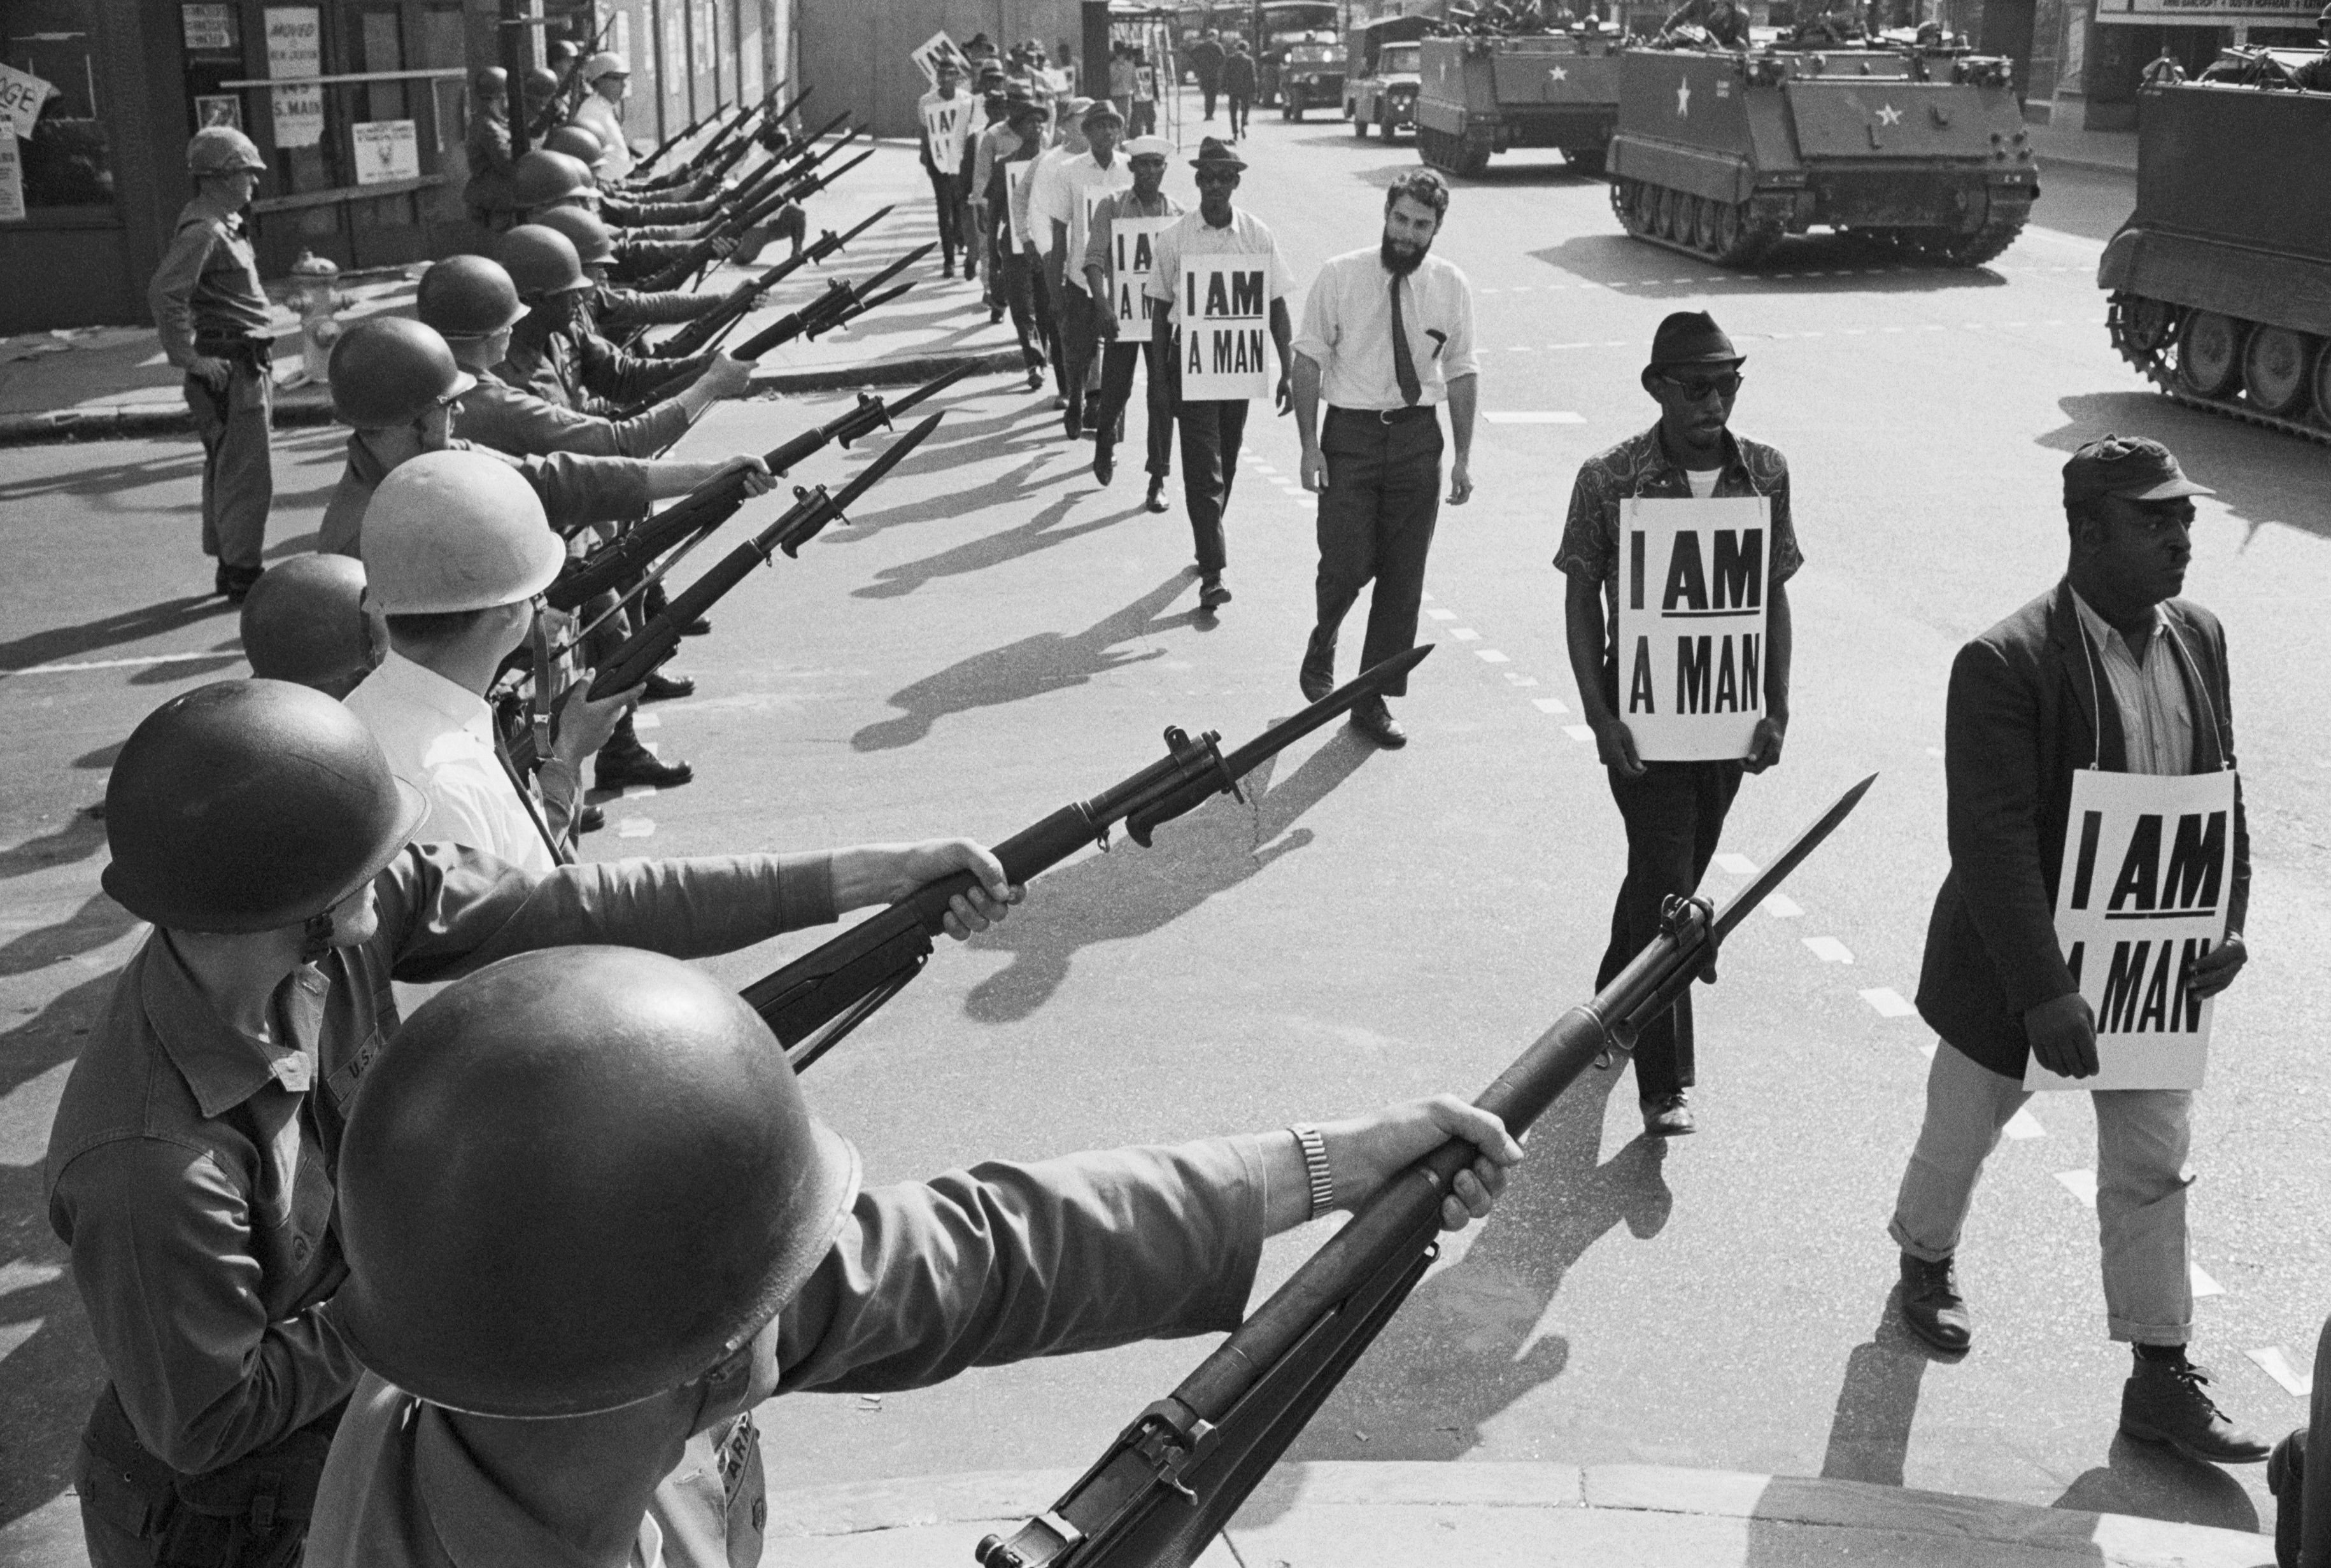 soldiers-at-civil-rights-protest-517322898-59a89d16d088c000106195e3.jpg